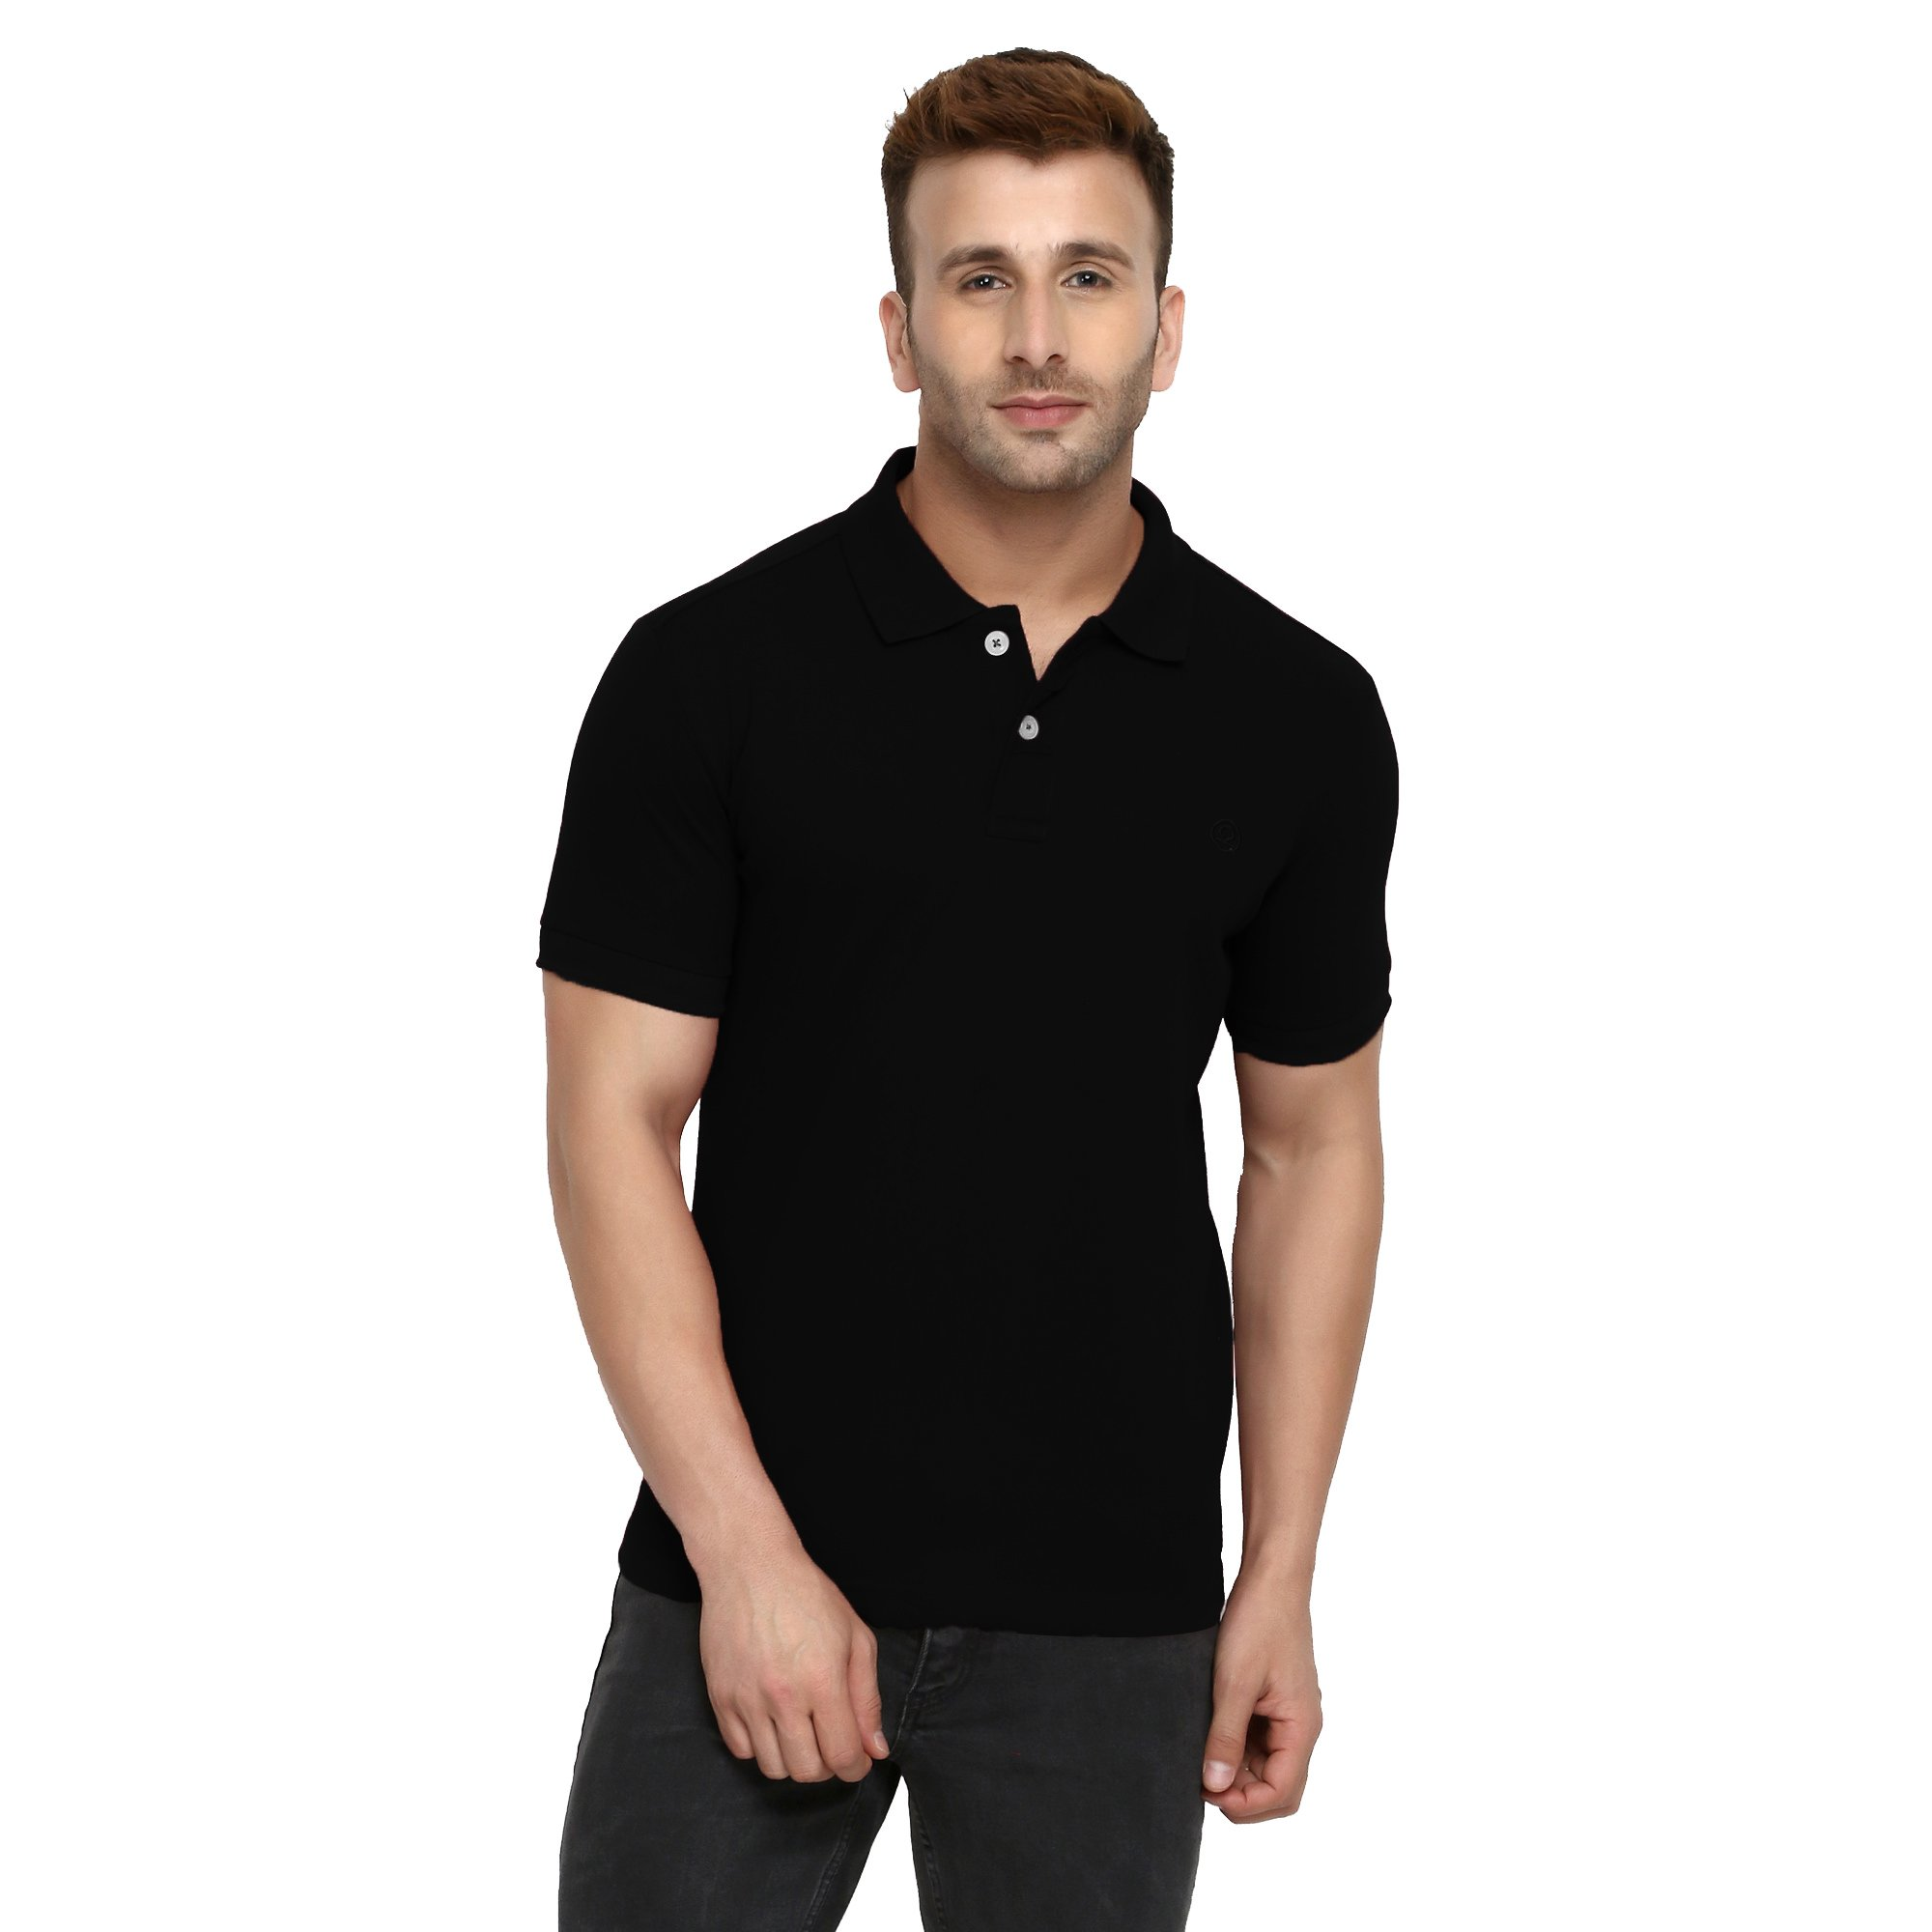 ac3482f516 CHKOKKO Two Button Half Sleeves Polo Neck Cotton T Shirts for Mens product  image